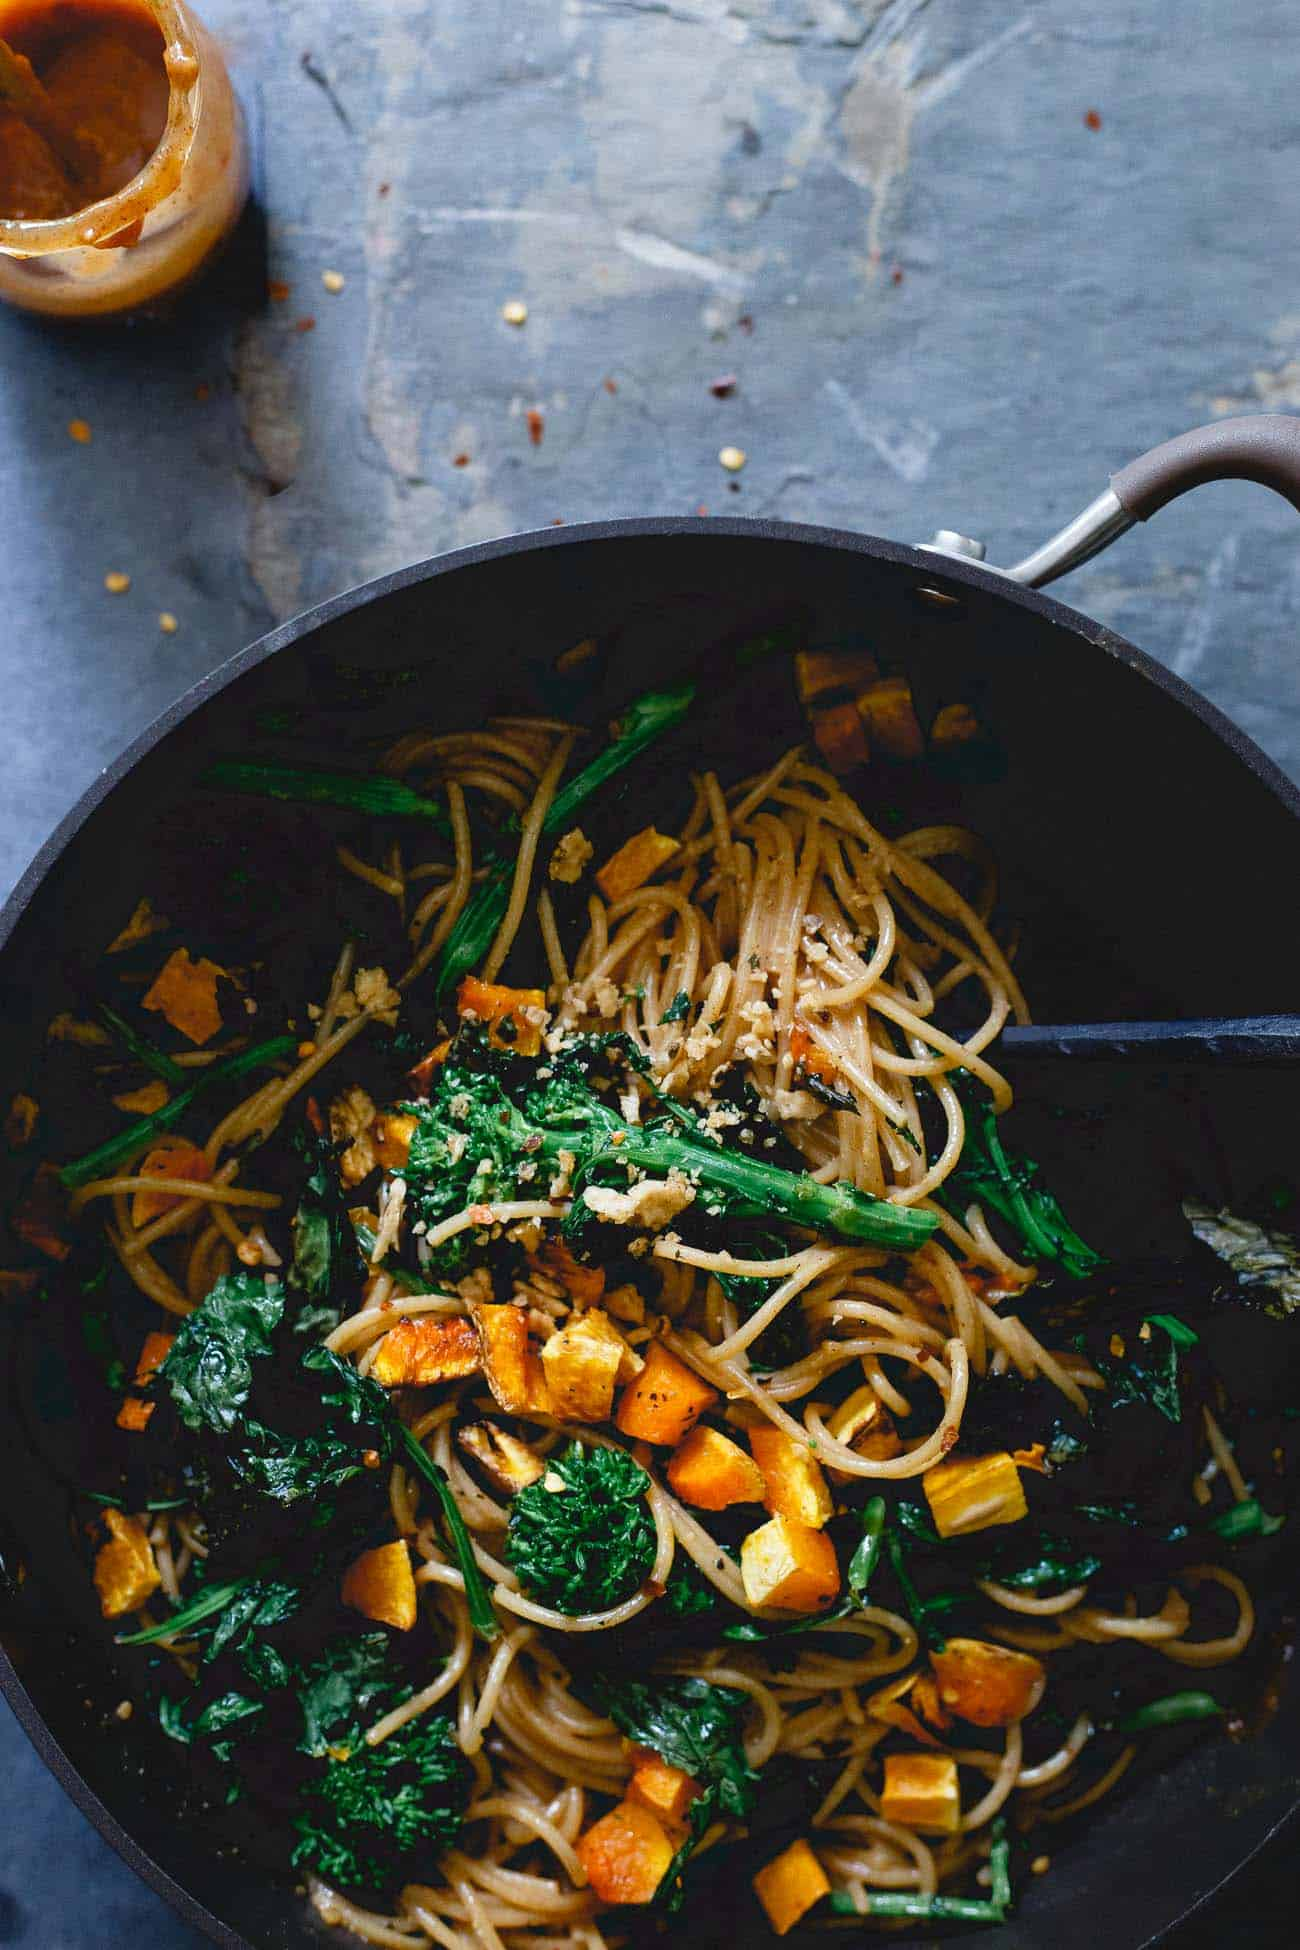 With roasted butternut squash and broccoli rabe, this fall pasta is a great seasonally appropriate comfort food dish.